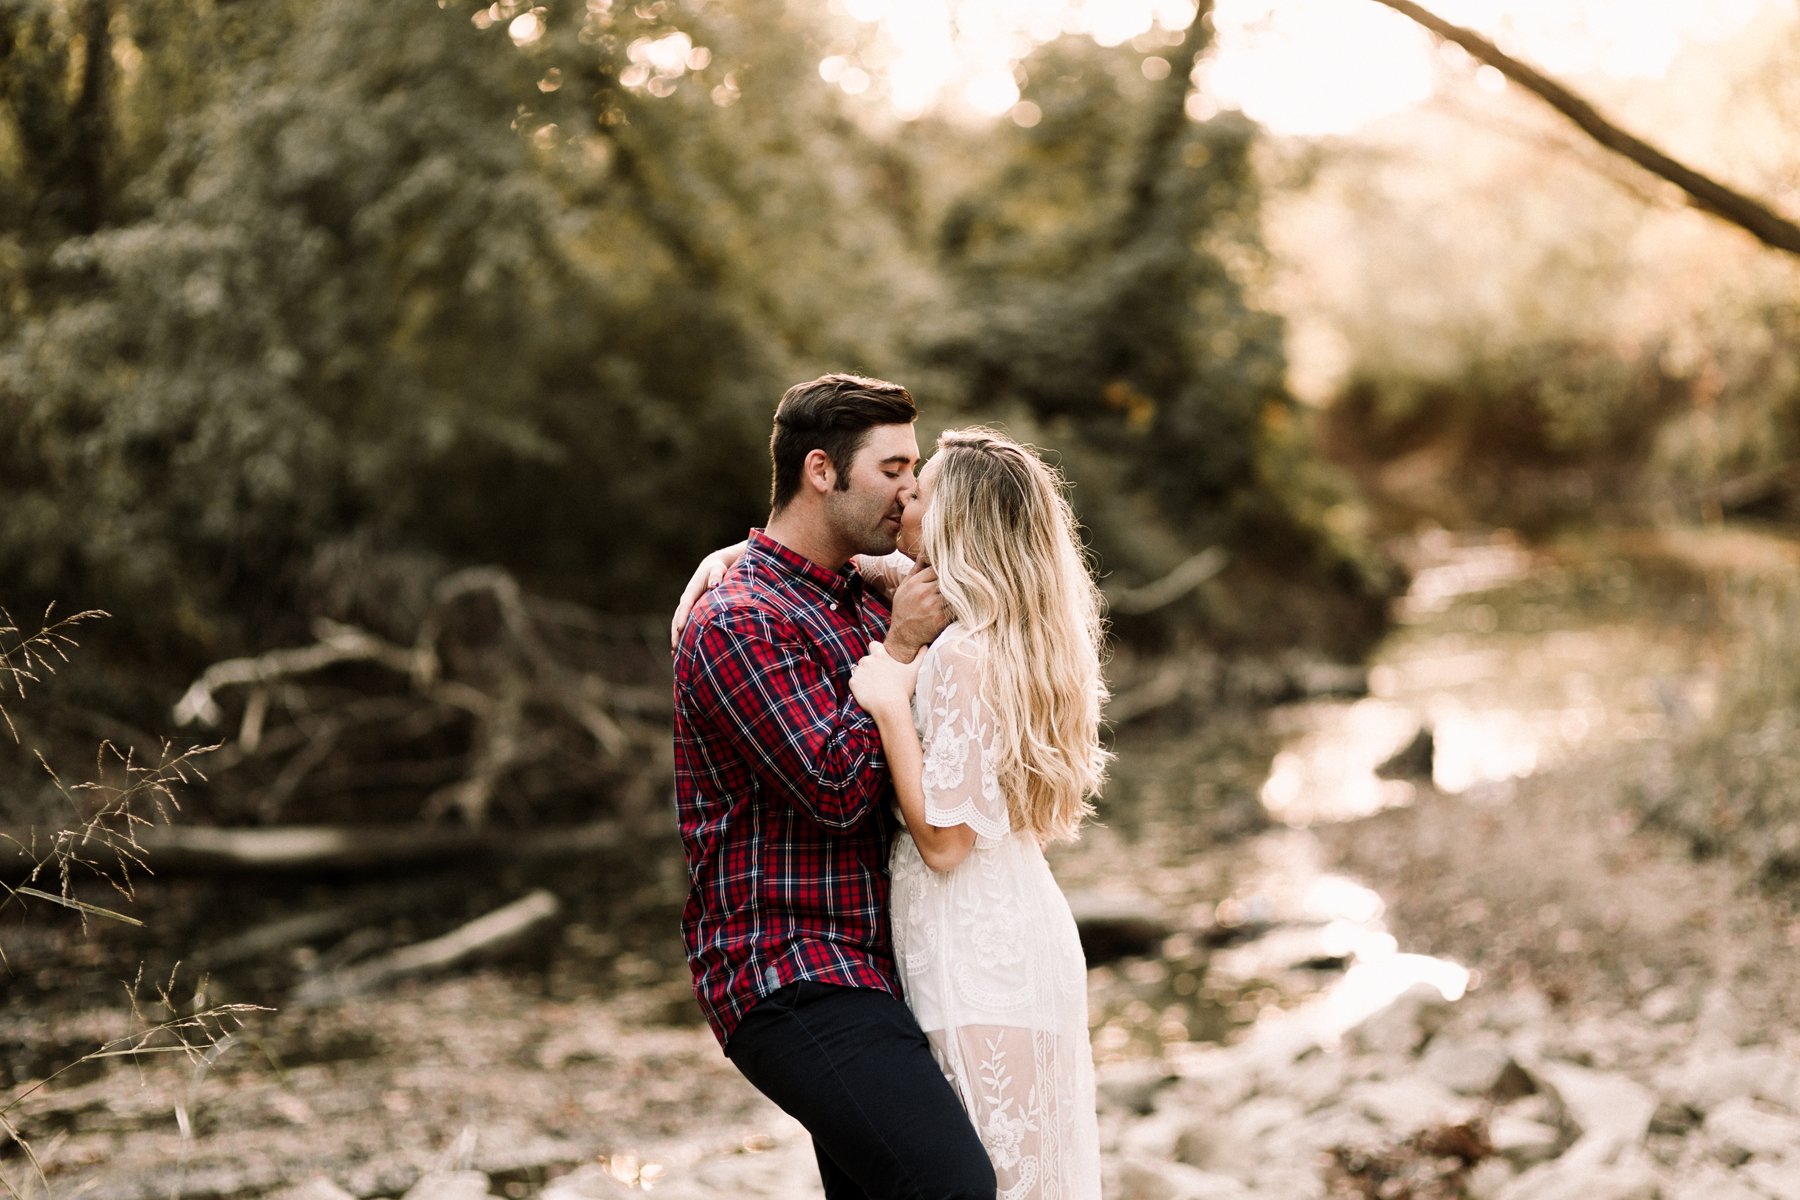 Sarah and Caleb - Engaged - K. Stoddard Photography & Fine Art (179 of 229).jpg